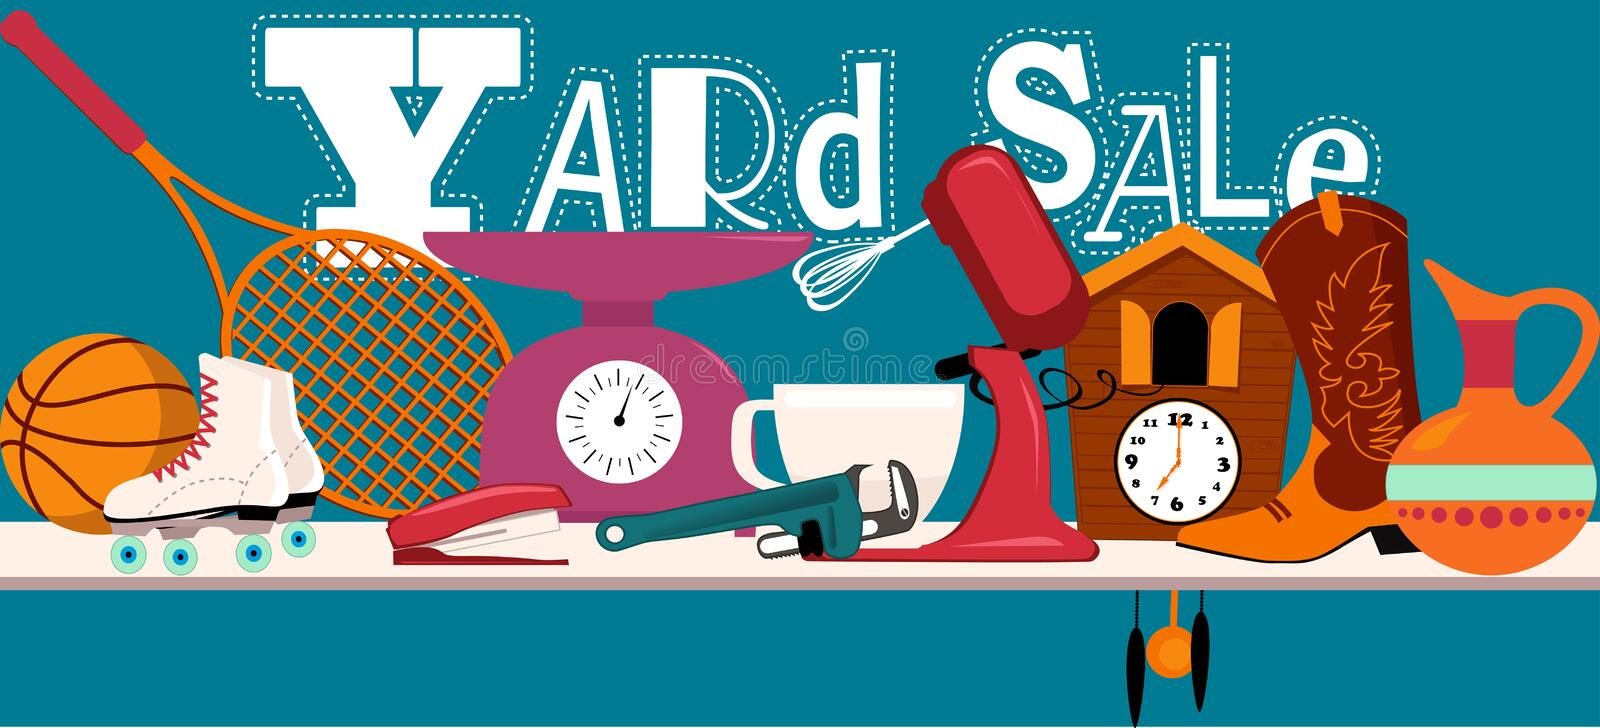 Yard sale sign. Yard sale banner with assorted household and sport items lying on a table, EPS 8 vector illustration, no transparencies vector illustration